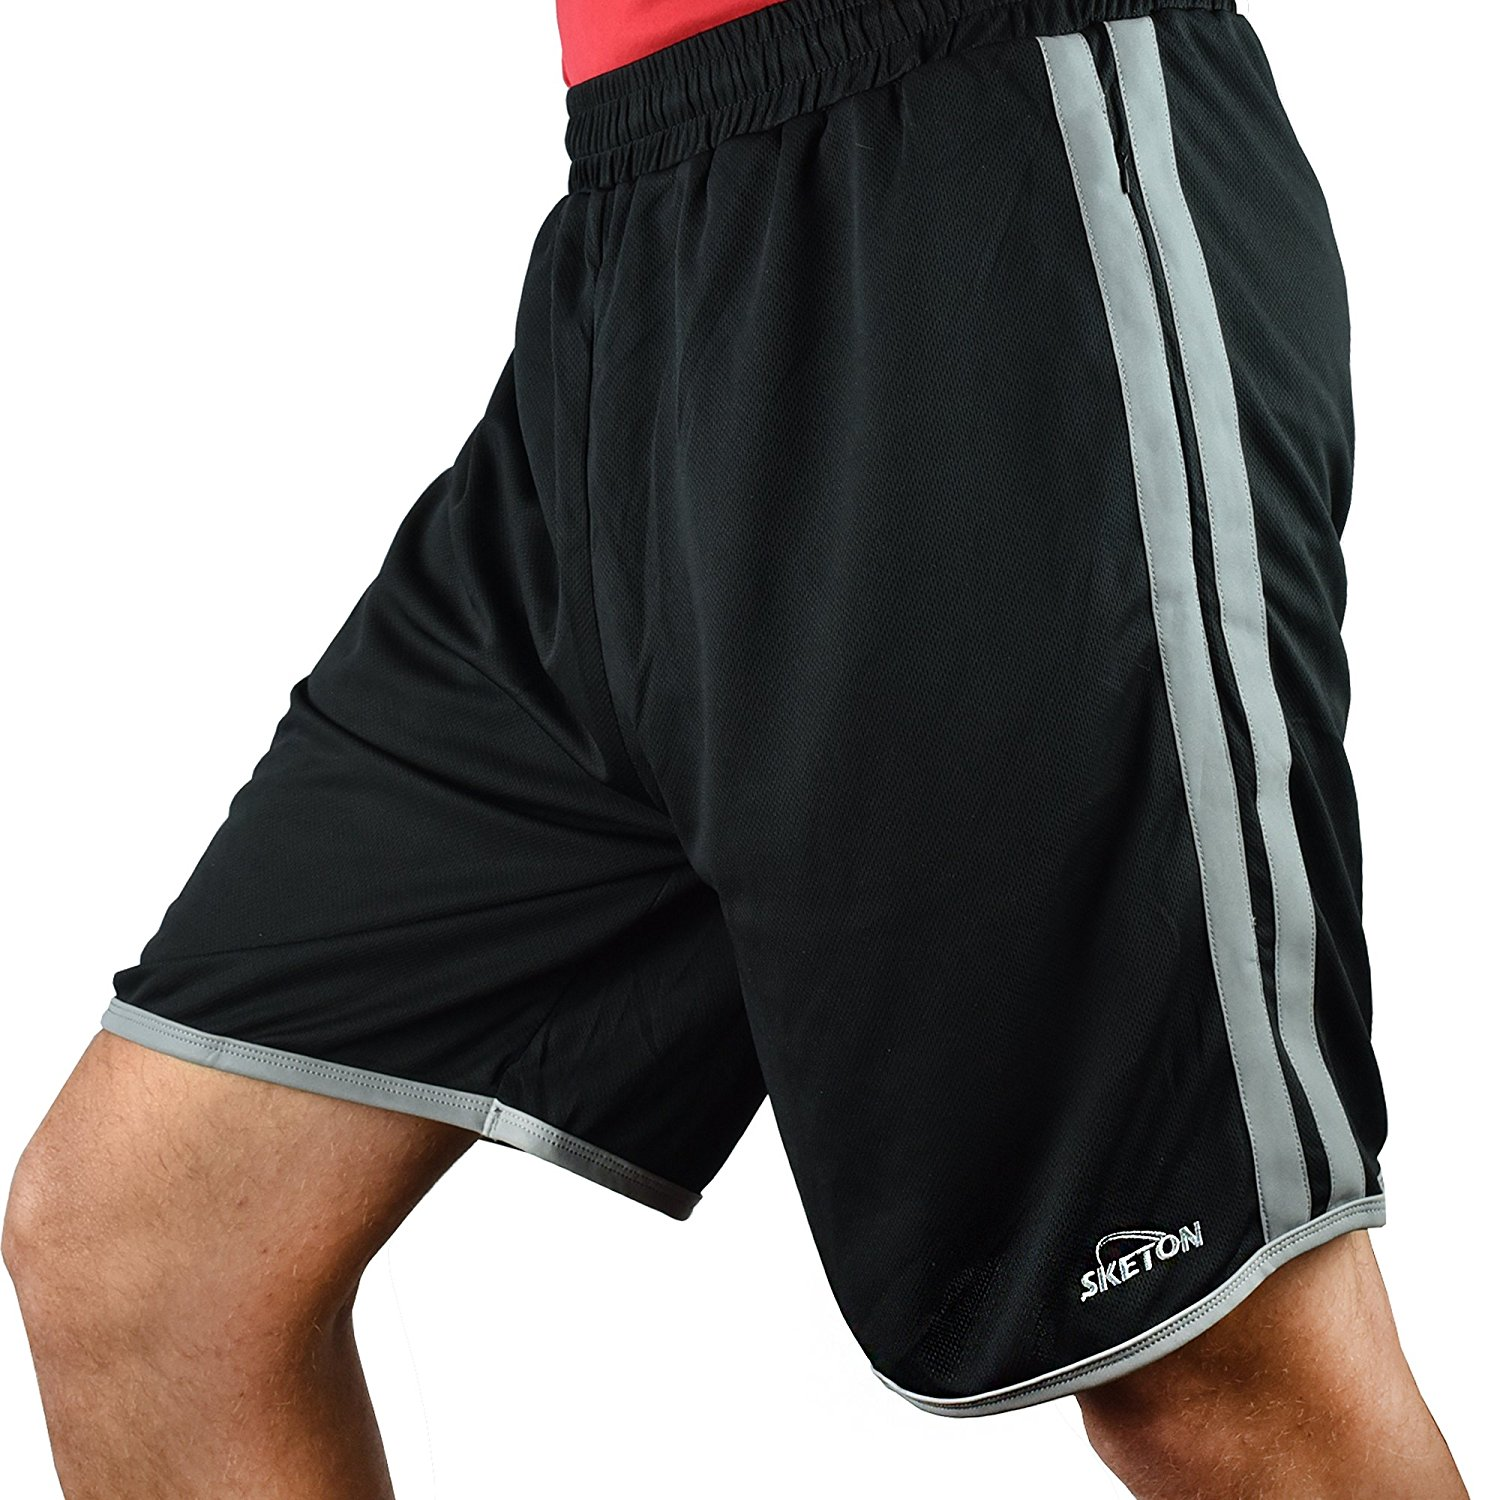 Sketon Men's Shorts Mesh Athletic Short by with Reflective Stripes with Pockets